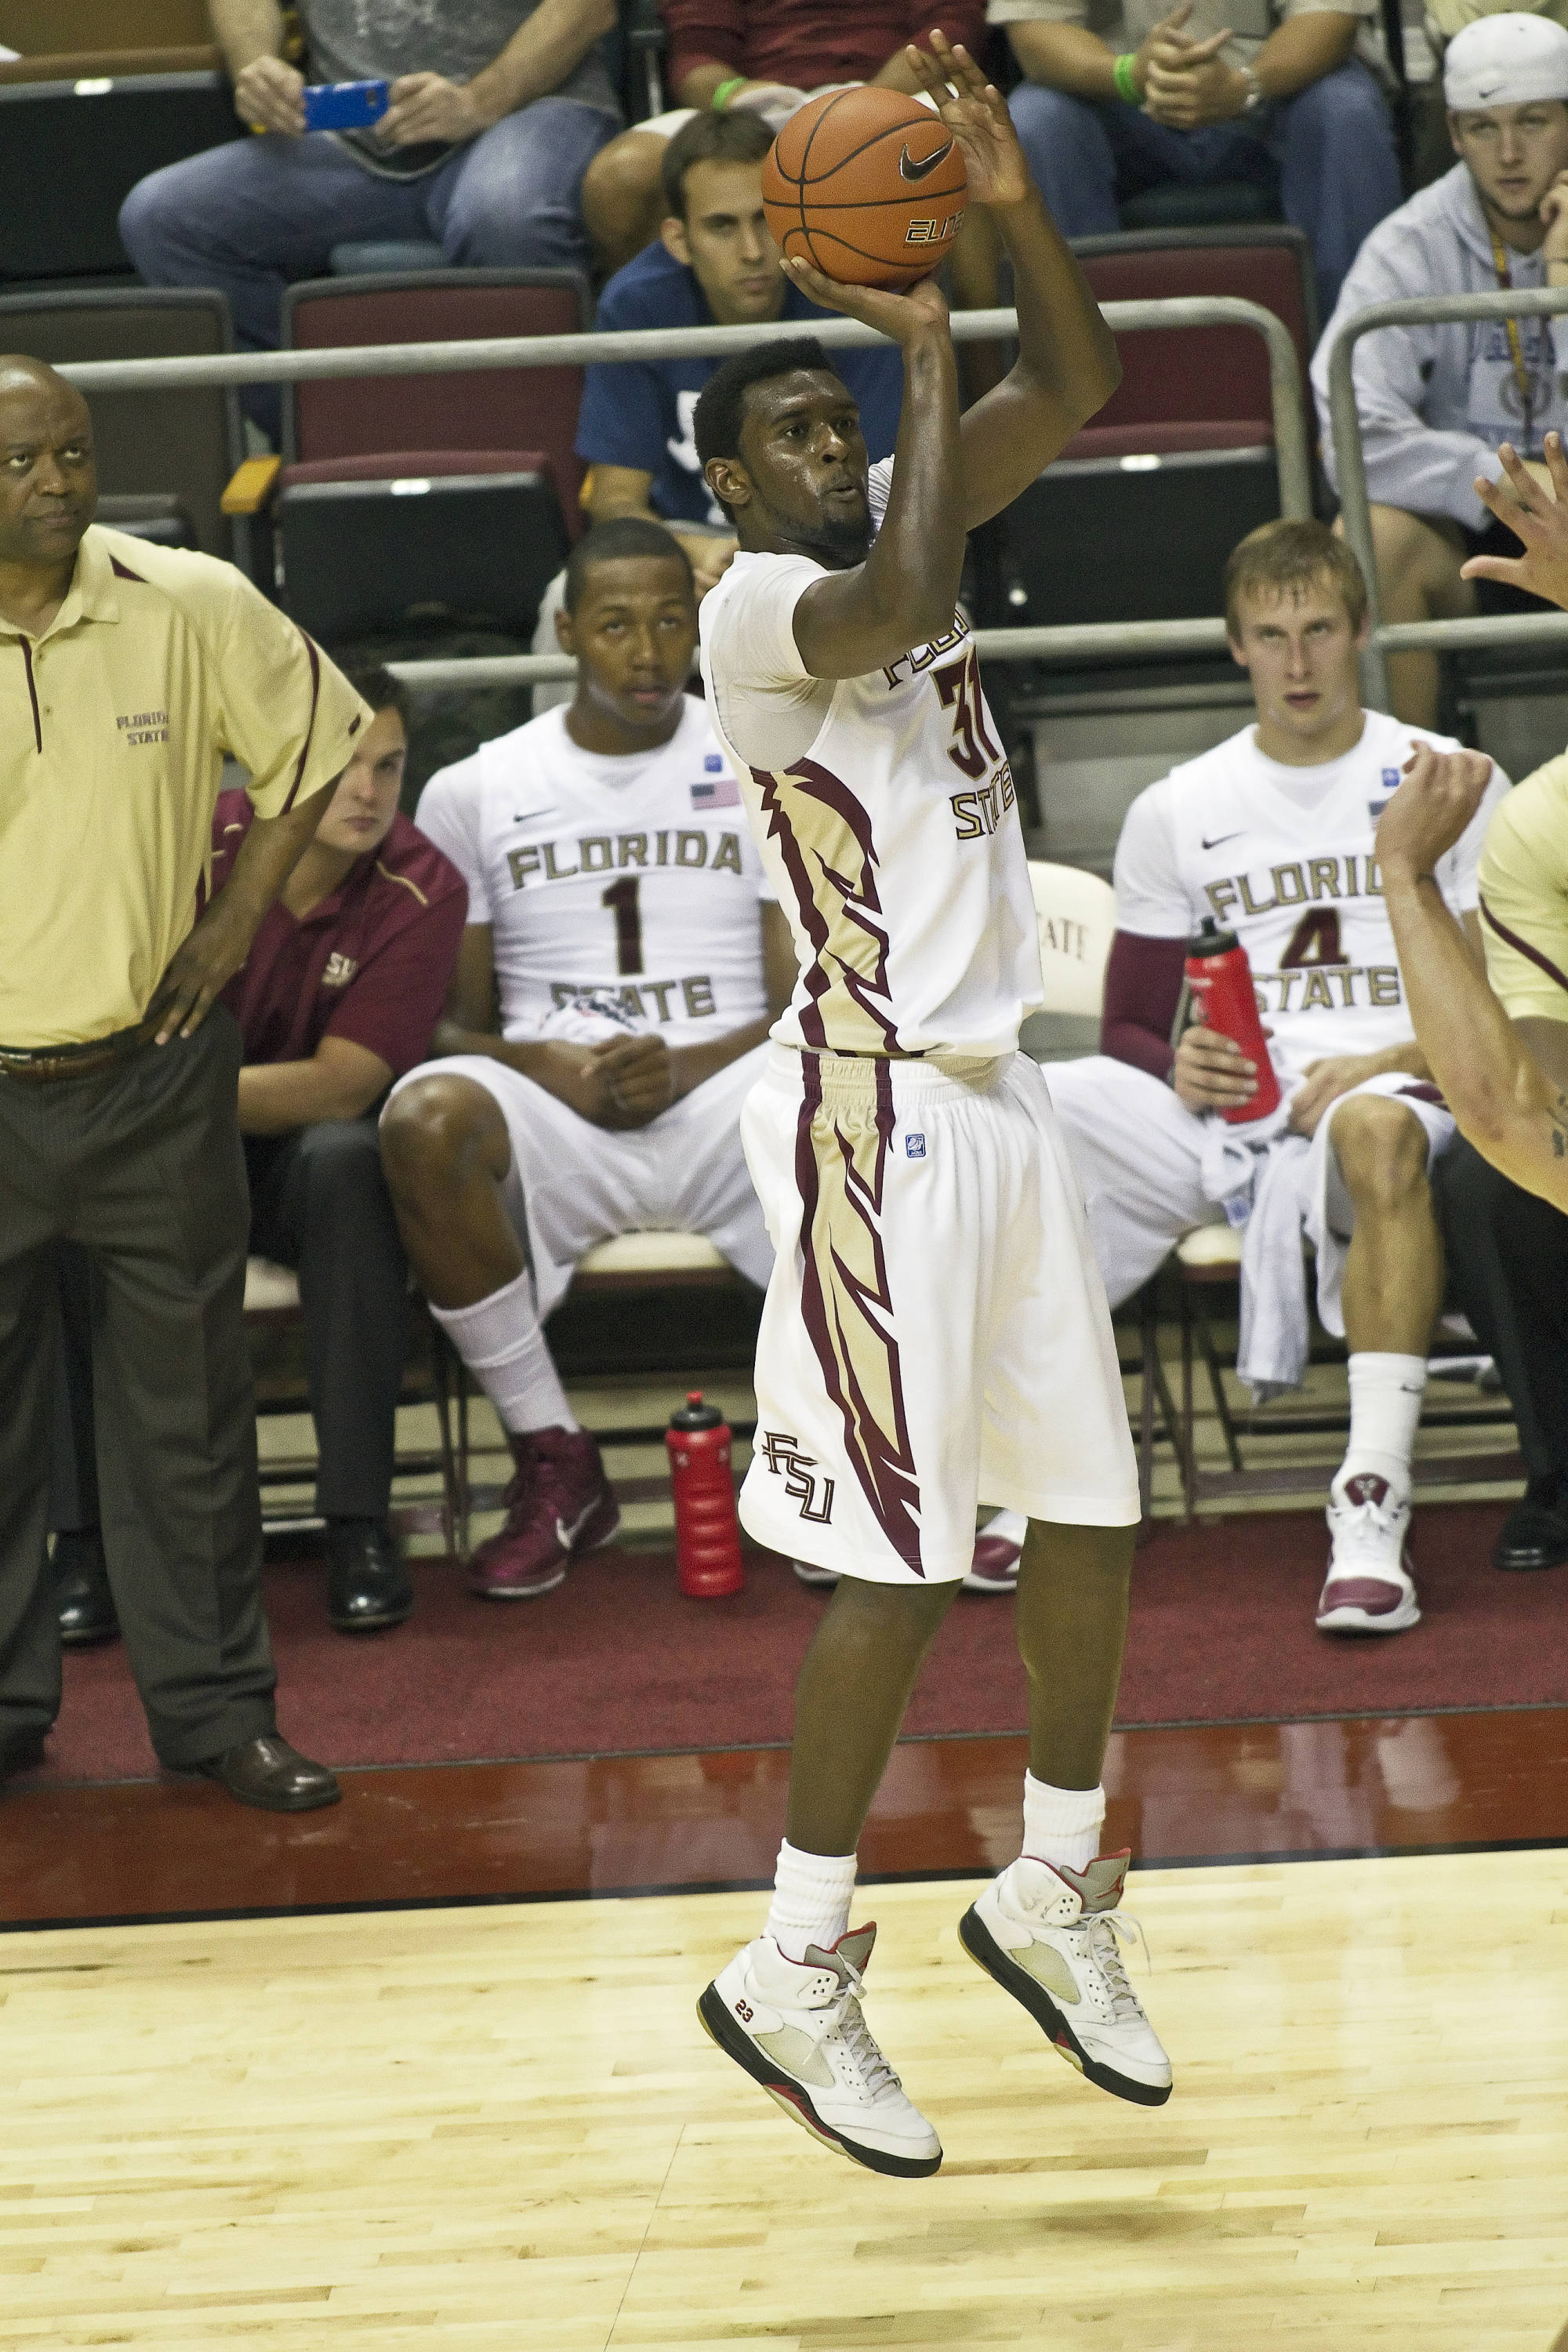 FSU vs Rollins - 11/03/2010 - Chris Singleton (31)